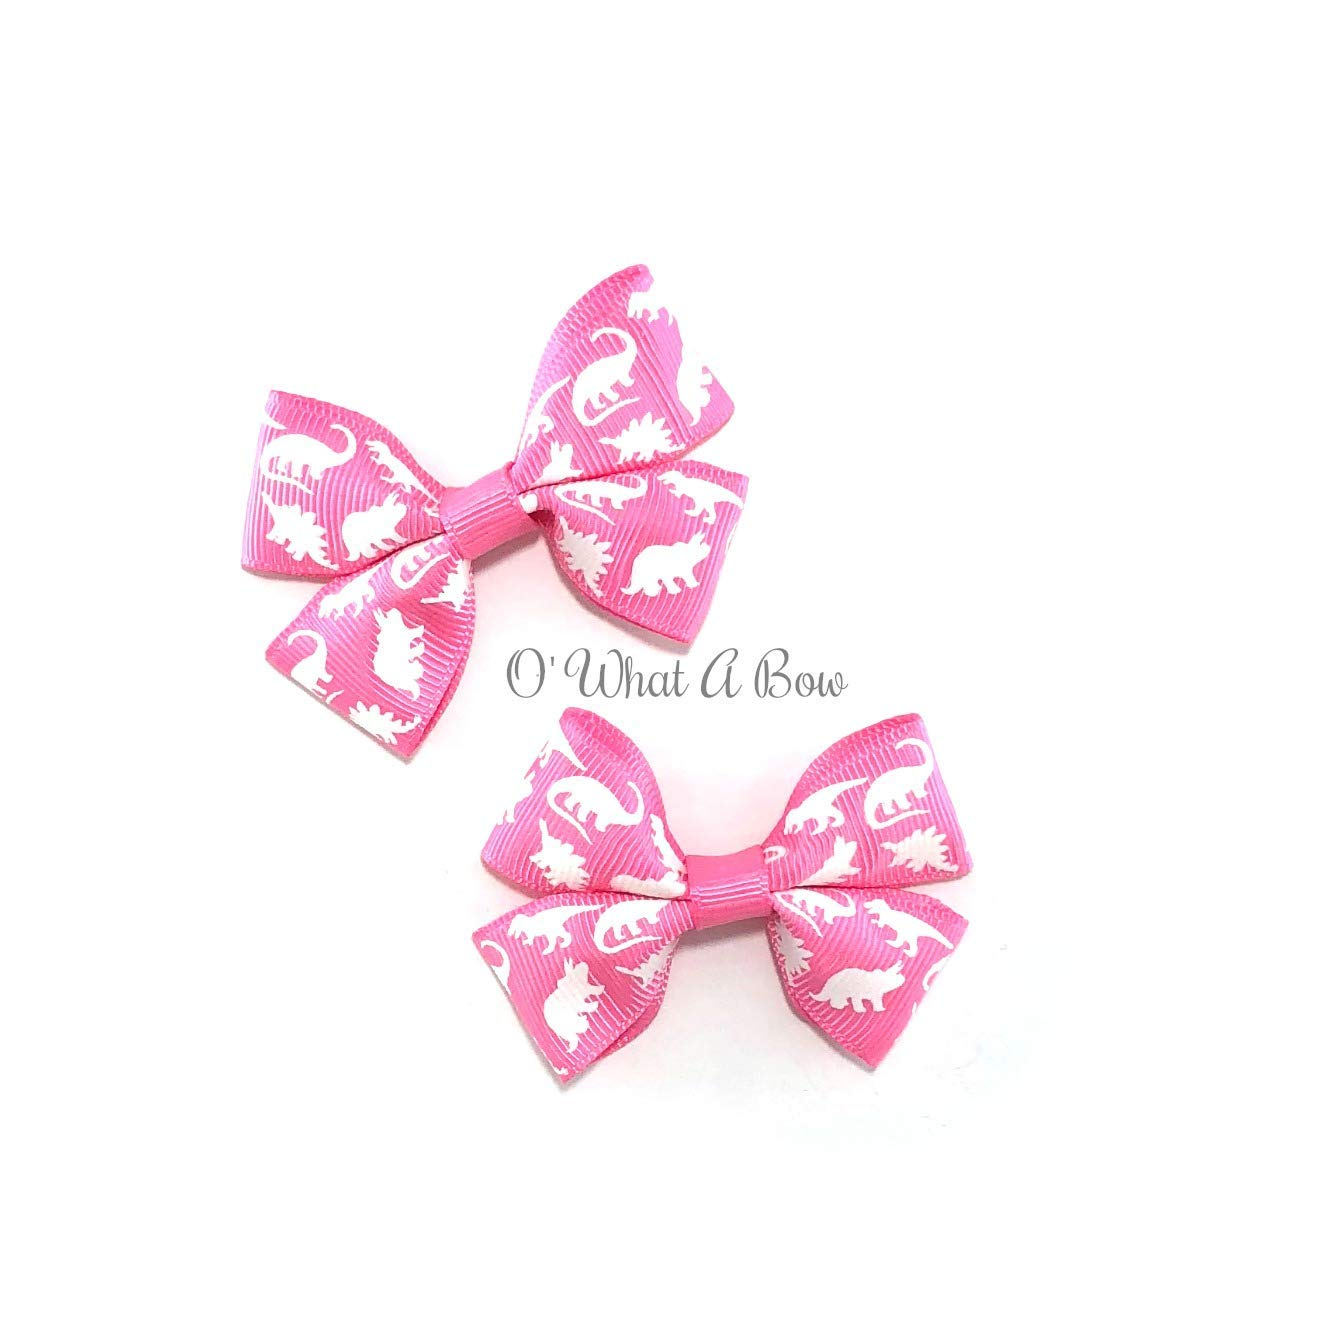 Glow in the Dark Pink Dinosaur Hair Bows set of 2